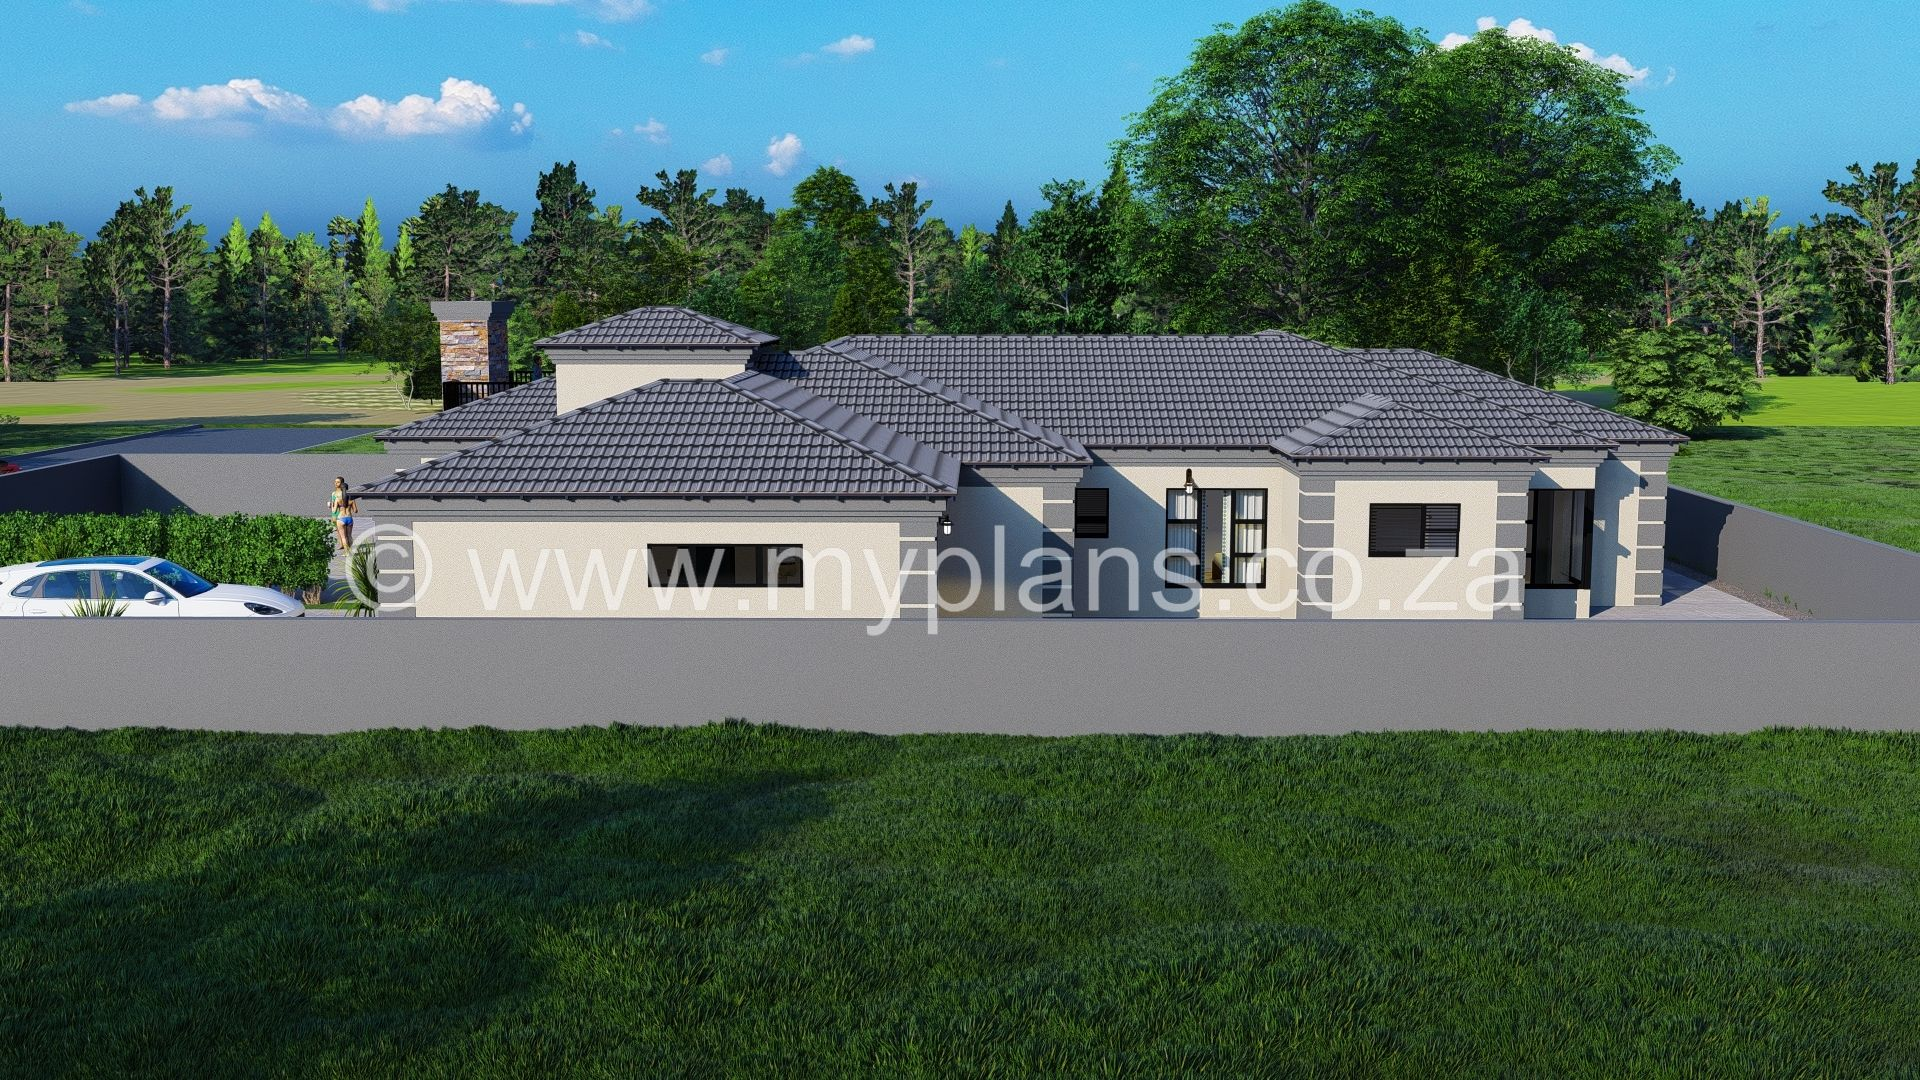 4 Bedroom House Plan Bla 021 10s Tuscan House Plans House Plan Gallery My House Plans